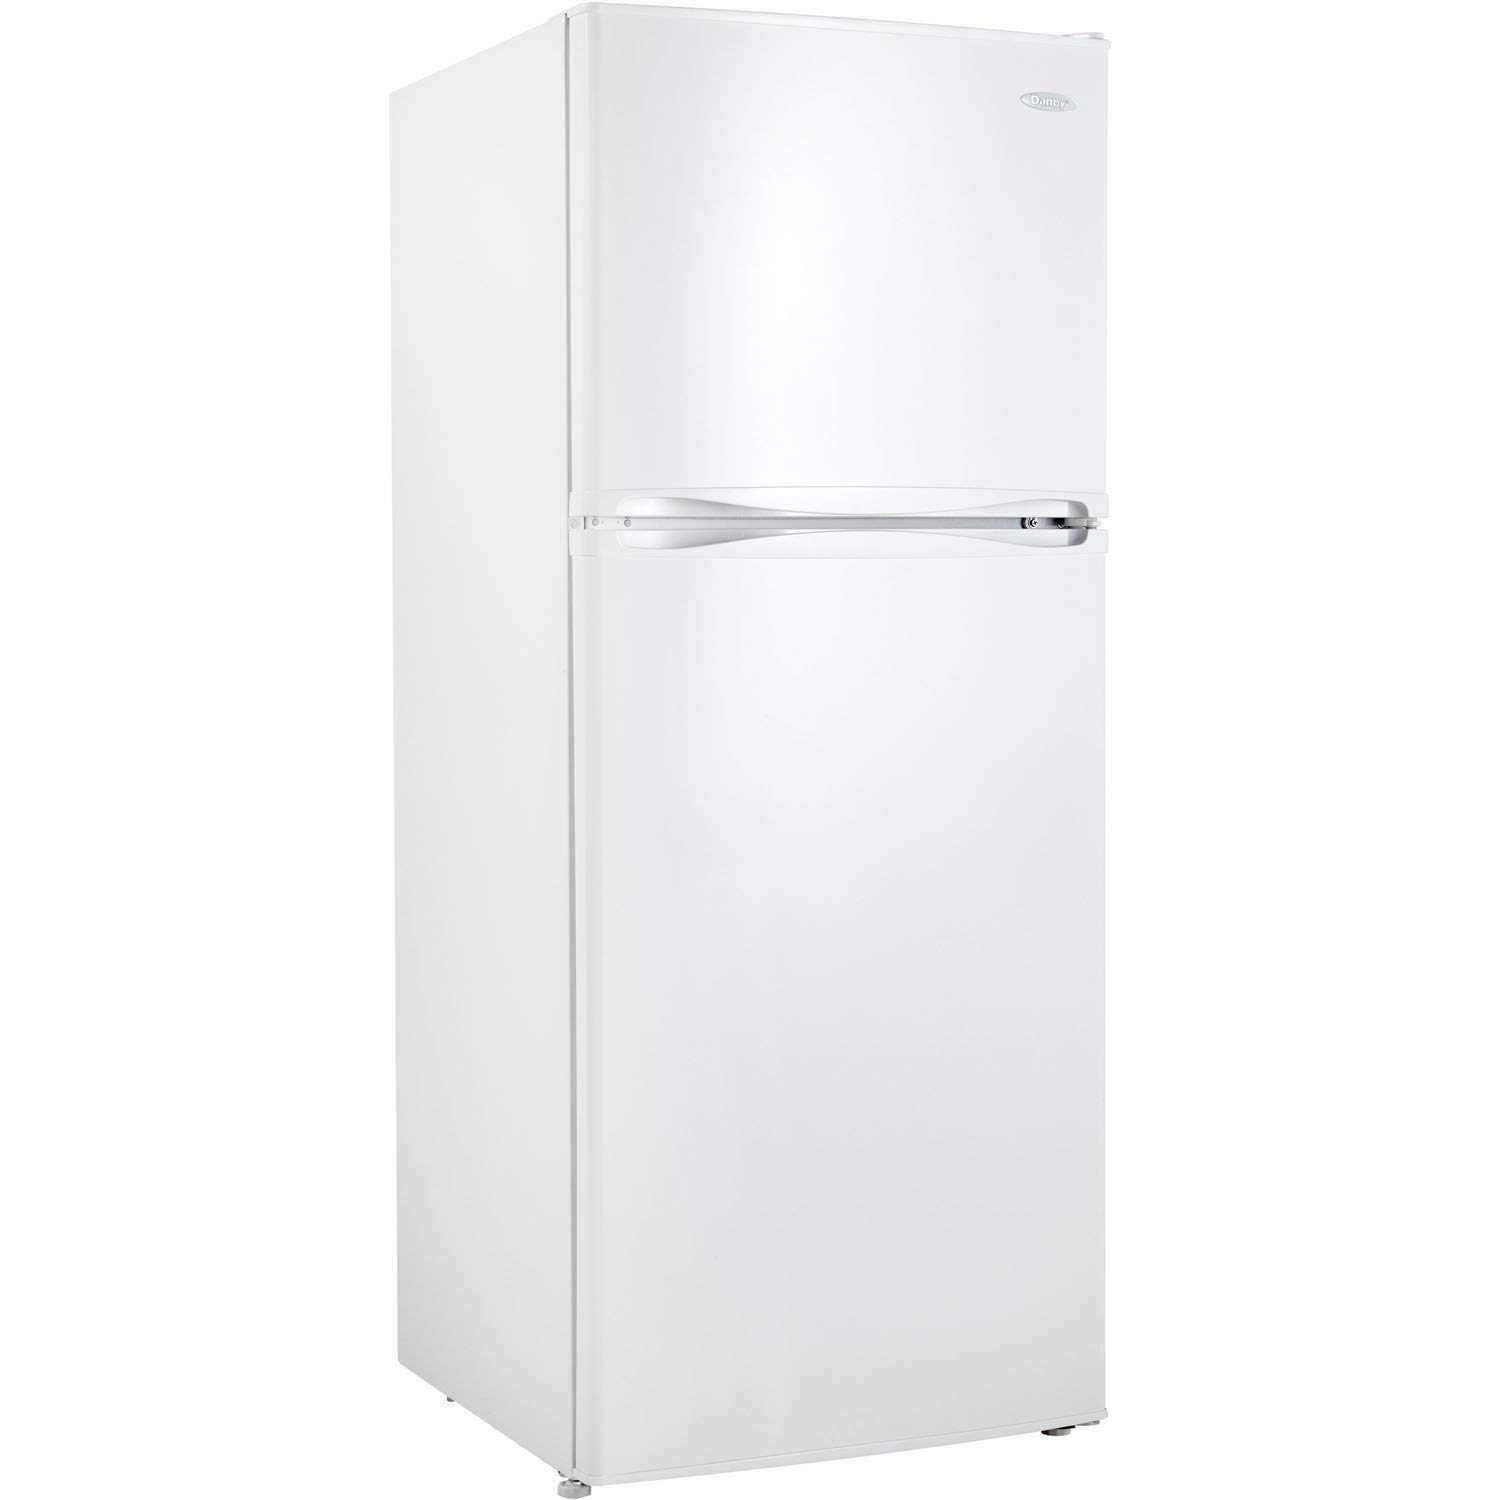 Trustpurchase 12.3 Cubic Foot Frost-Free Refrigerator with Top-Mount Freezer in White, Frost-Free Operation for Hassle-Free Maintenance, Separate Electronic Controls for Refrigerator and Freezer